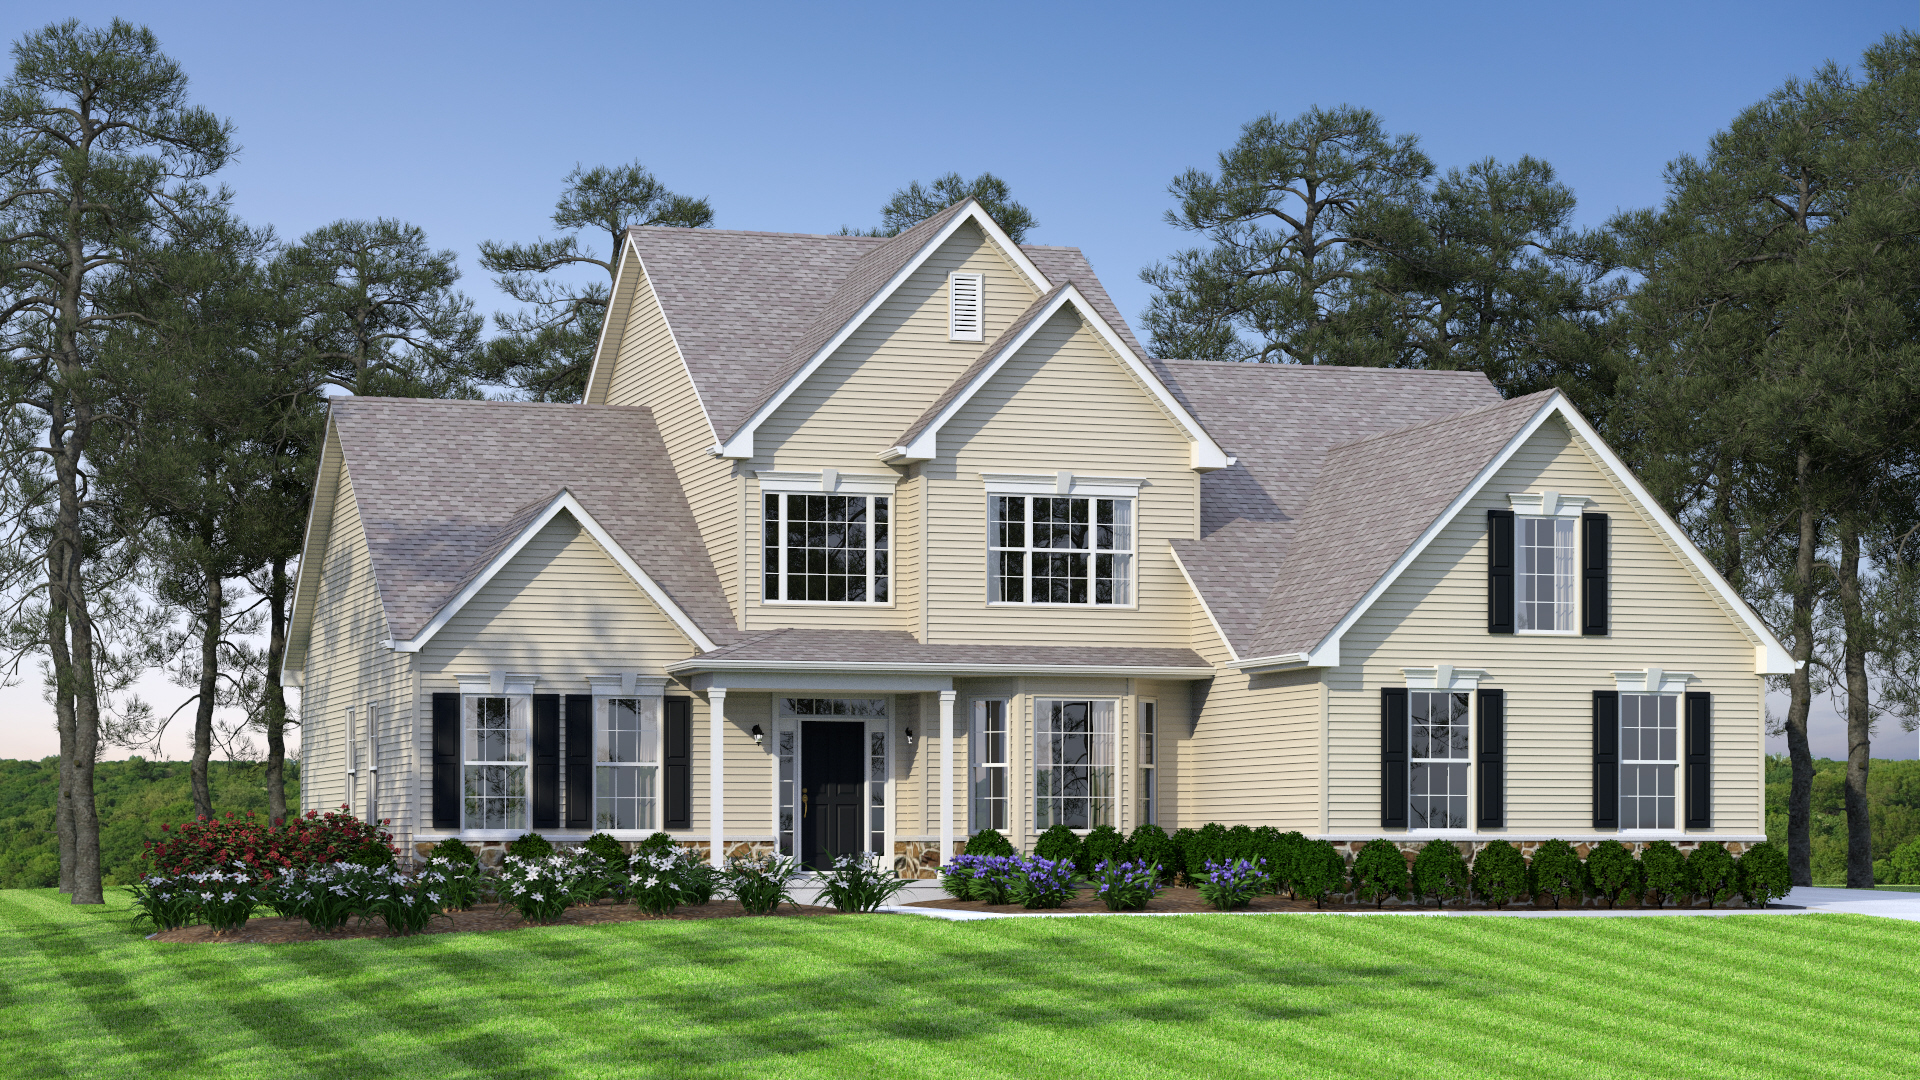 The Legend   2,800 sf / 4 br / 2.5 ba / 2 car garage  Starting at $346,990